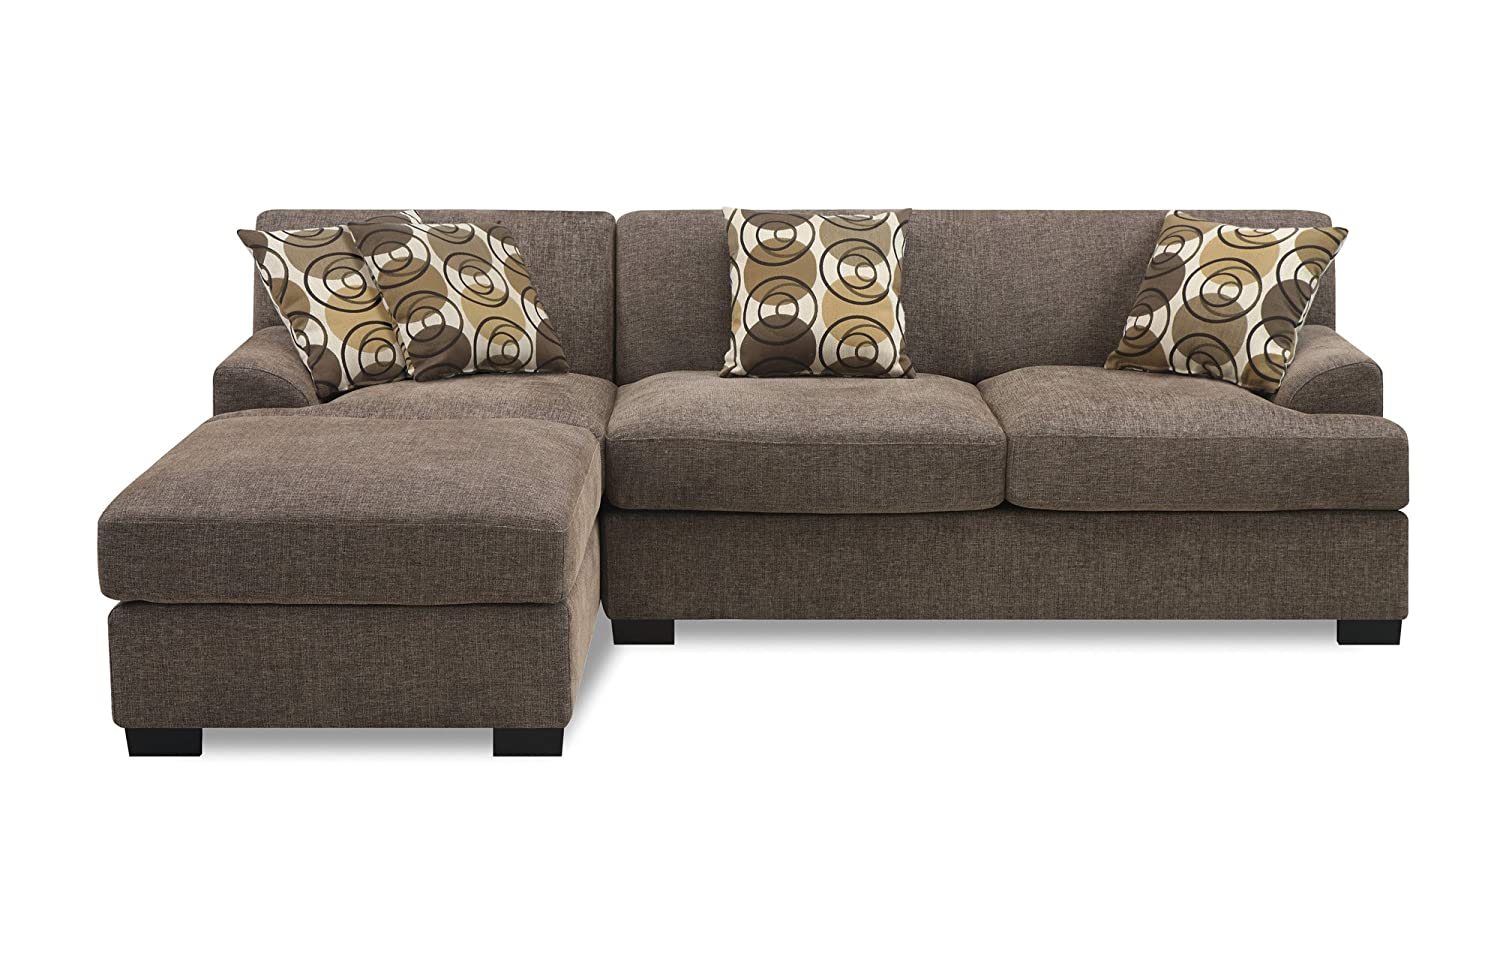 Amazon.com Bobkona Poundex Benford Collection Faux Linen Chaise Sofa 2- Piece Slate Kitchen u0026 Dining  sc 1 st  Amazon.com : two piece sectional couch - Sectionals, Sofas & Couches